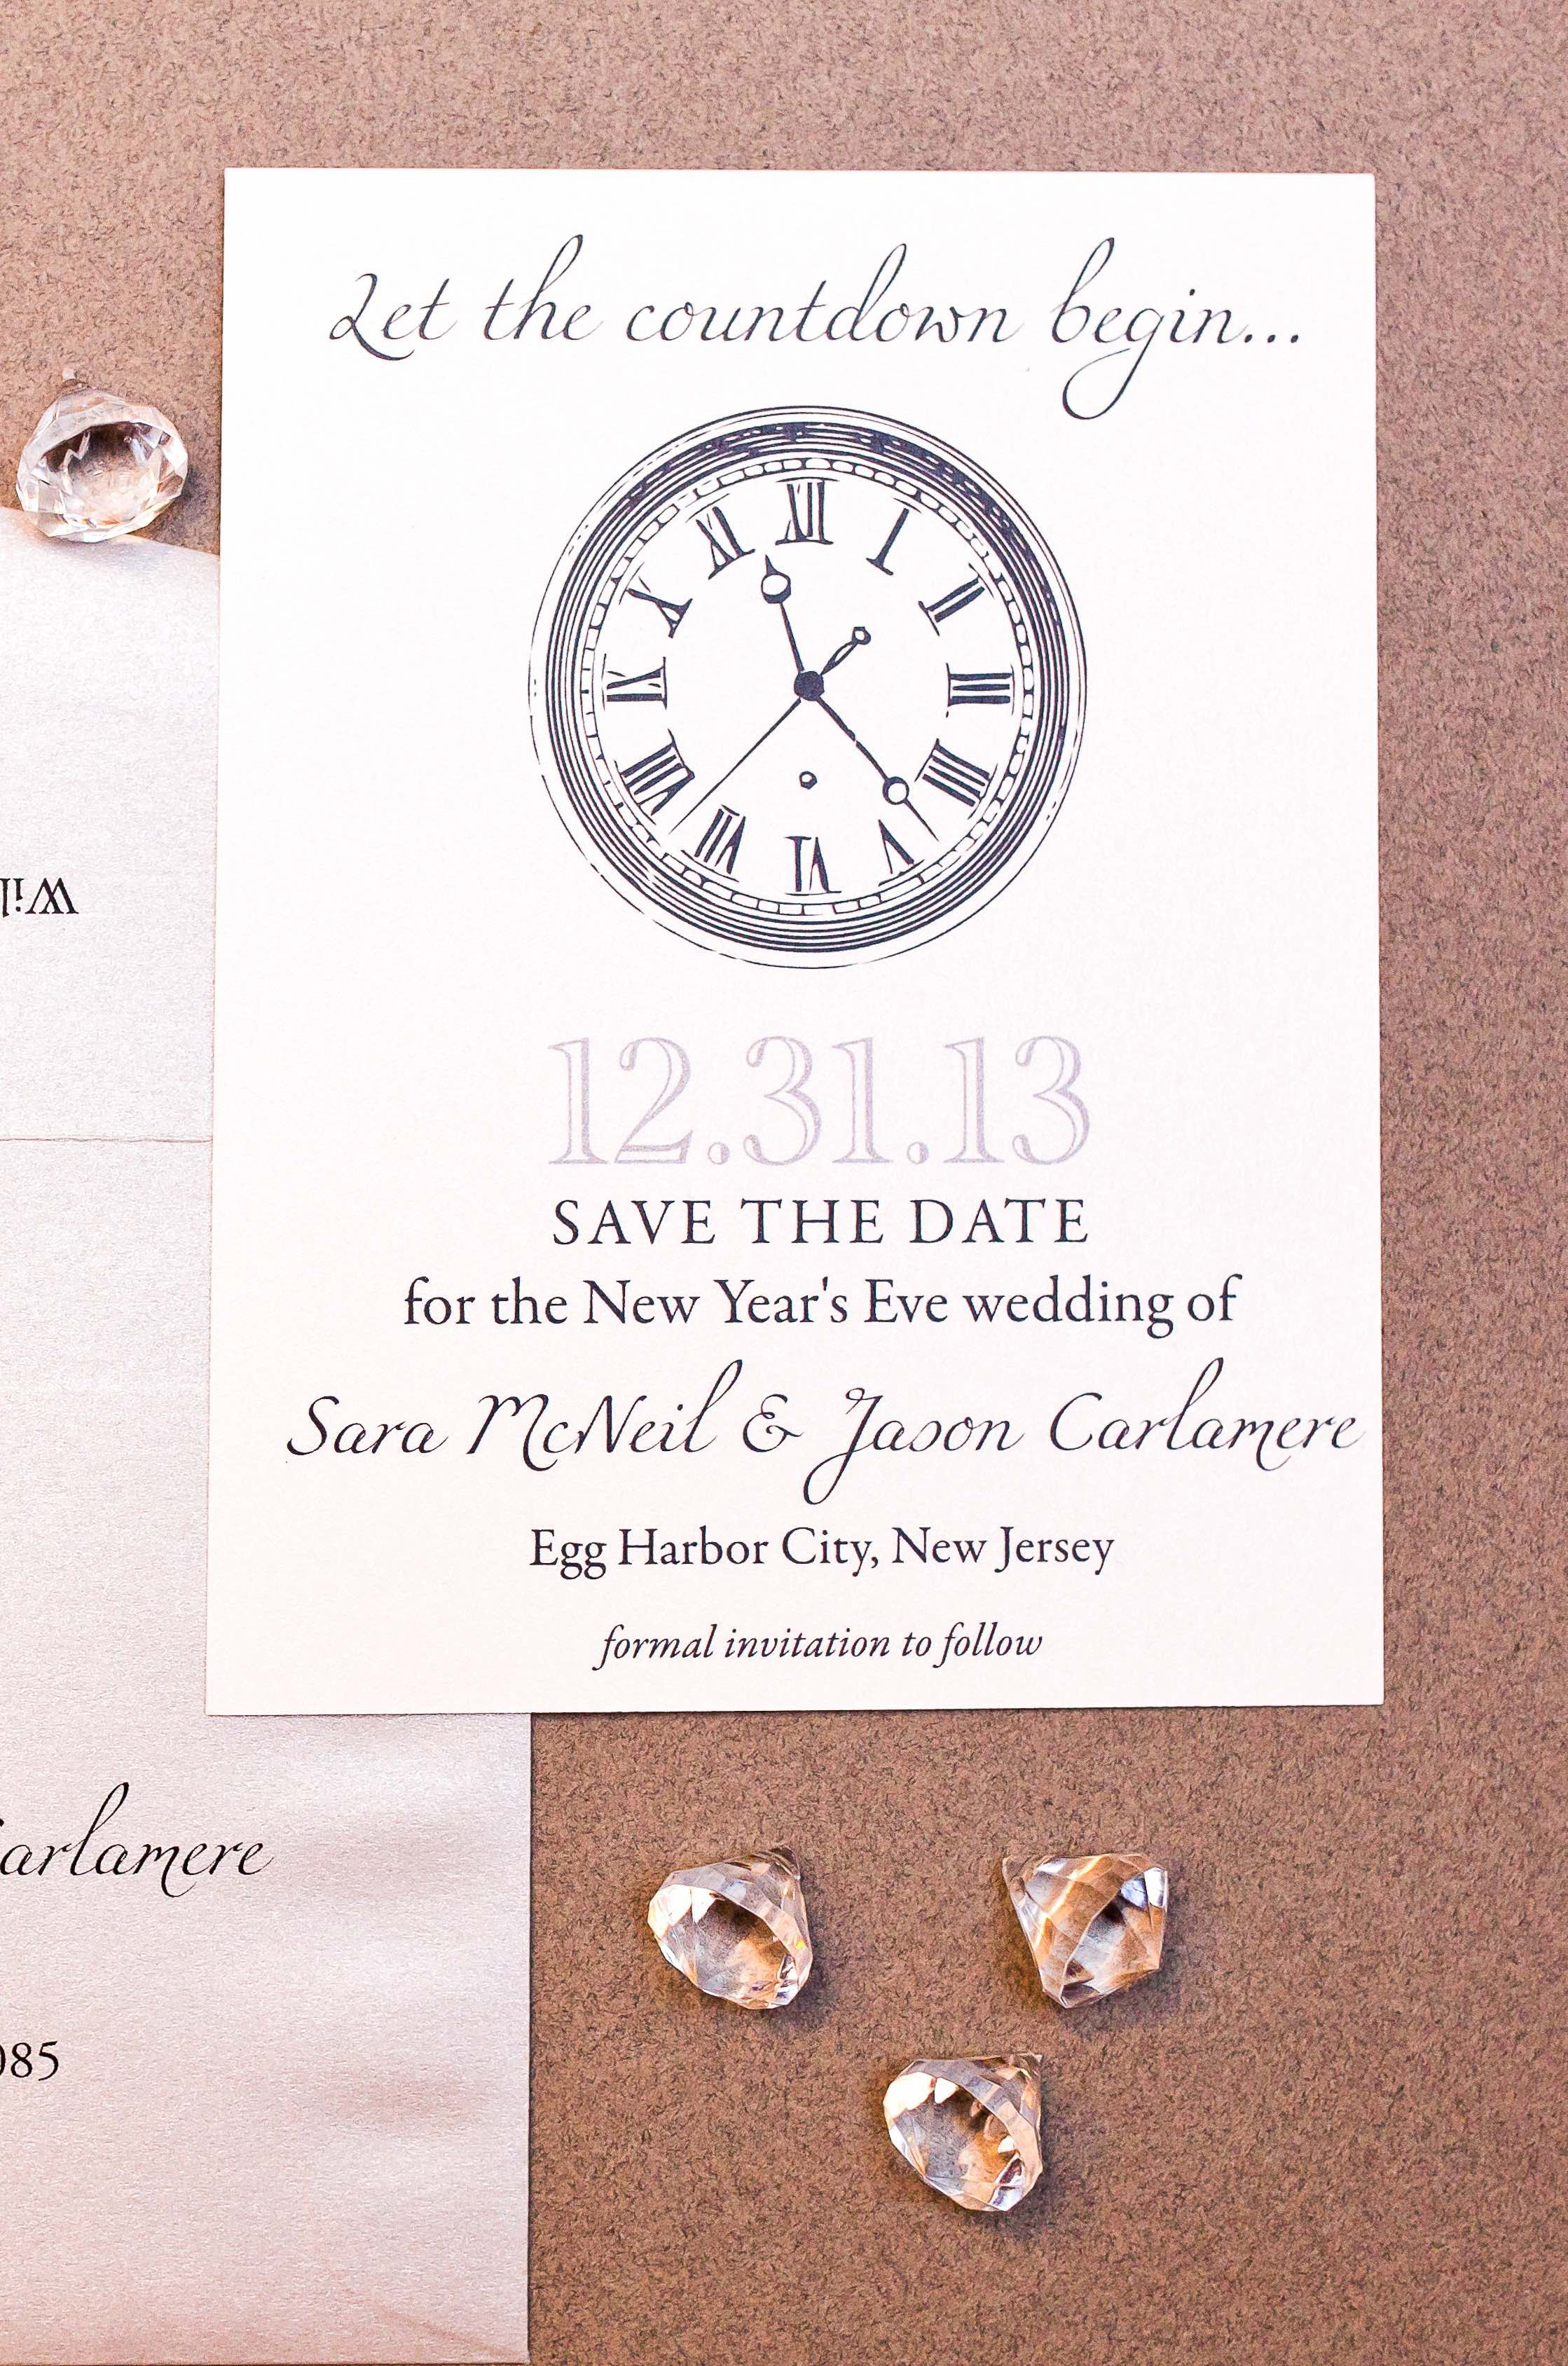 This Simple Design Makes Such A Statement For Your New Year S Eve Save The Dates Wouldn T Be Fun With Rhinestone In Center Of Clock Too